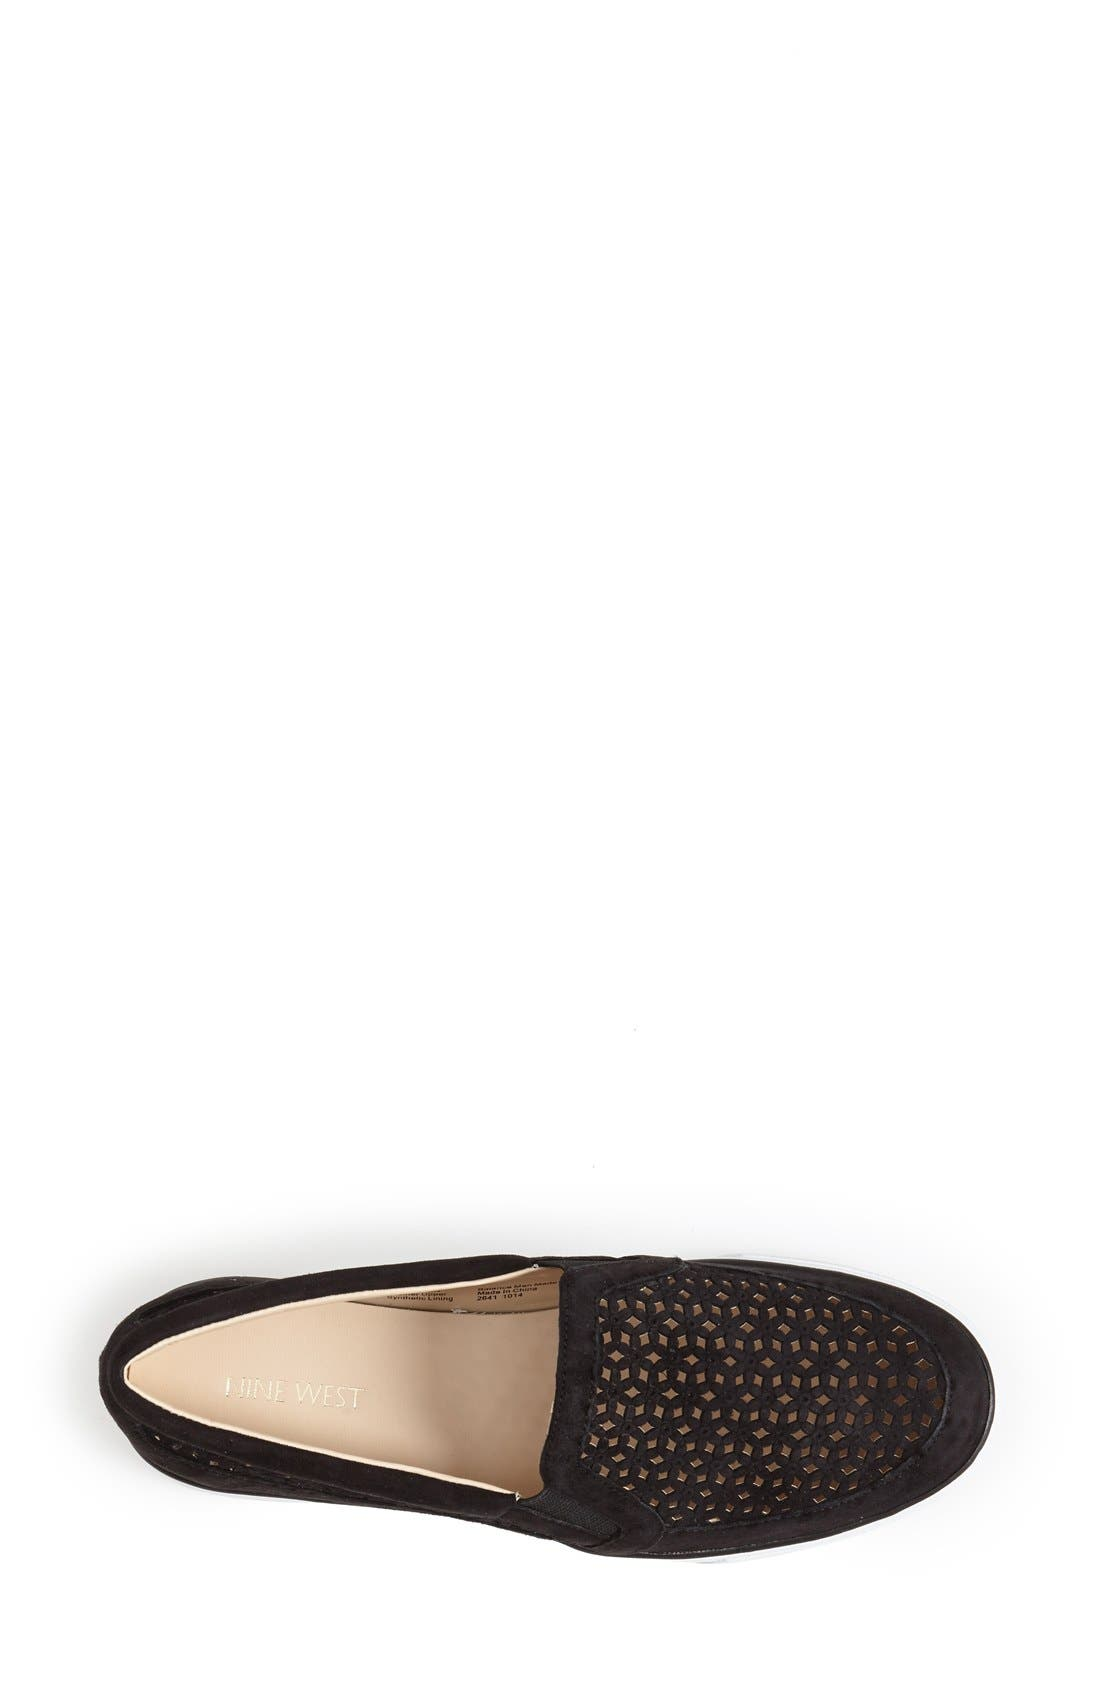 Alternate Image 3  - Nine West 'Banter' Perforated Suede Slip-On Sneaker (Women)